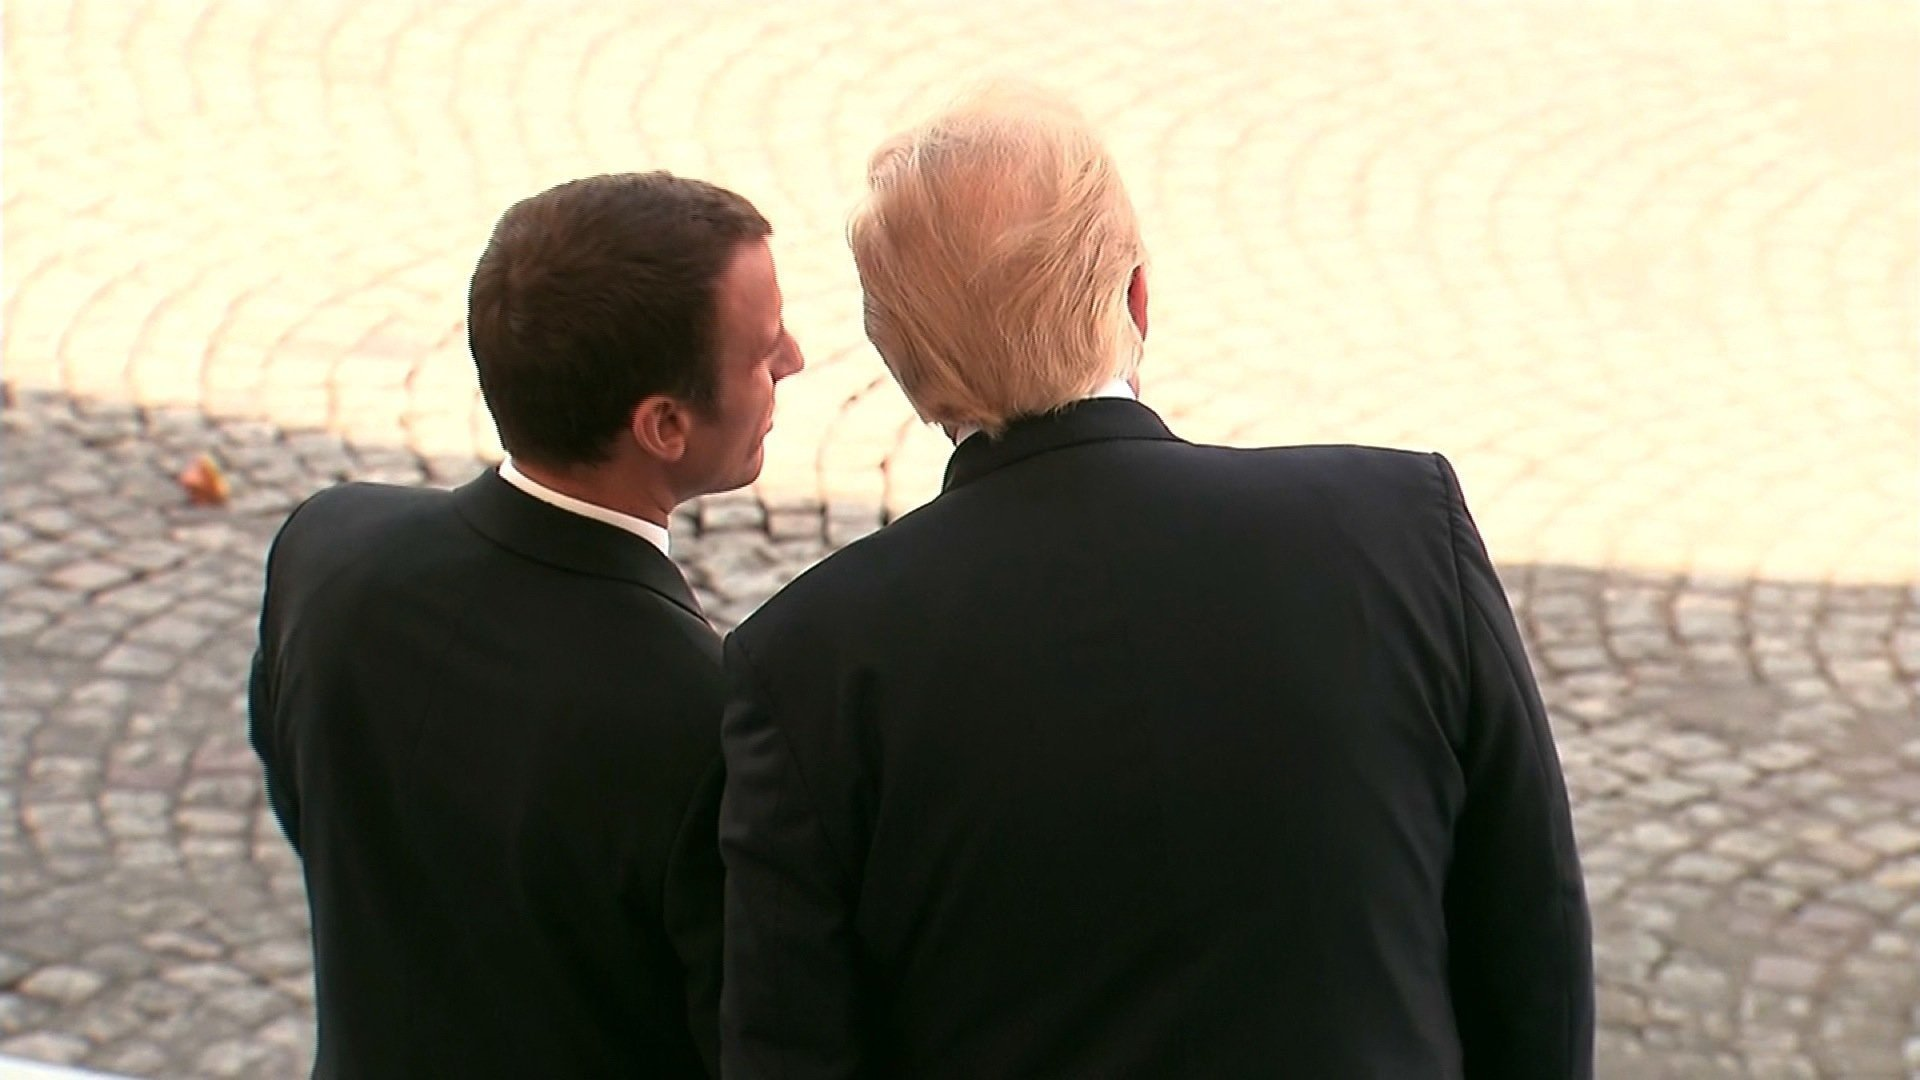 The other Trump-Macron handshake everyone's talking about